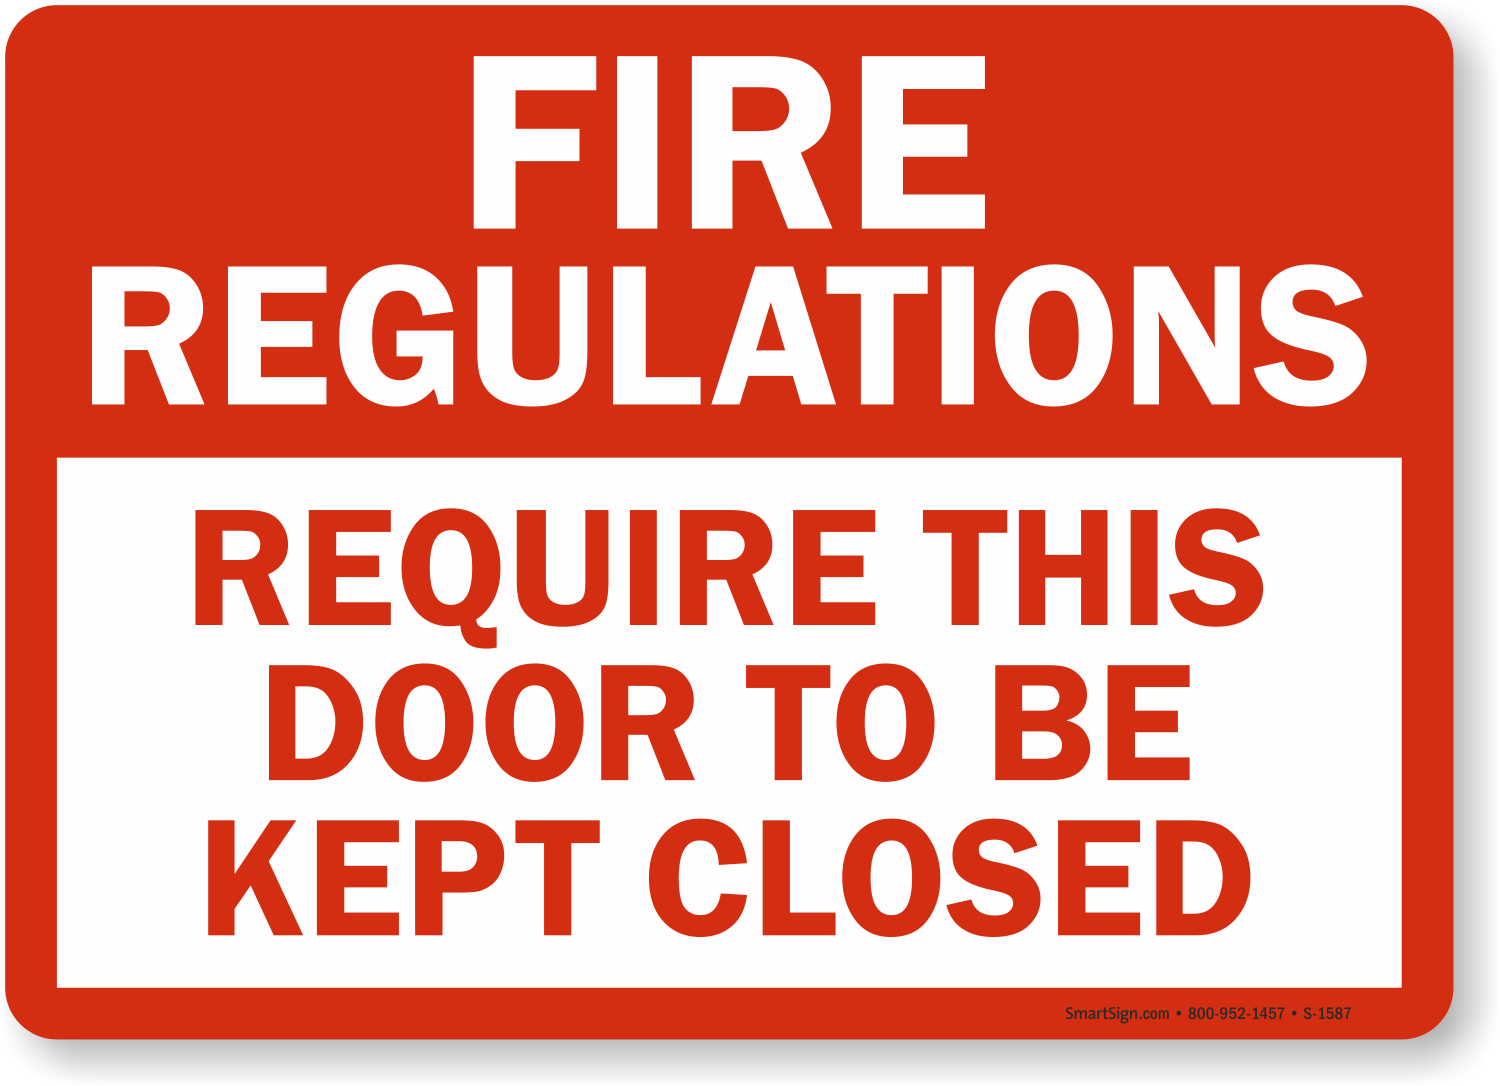 Close Door On Fire : Fire door keep closed signs